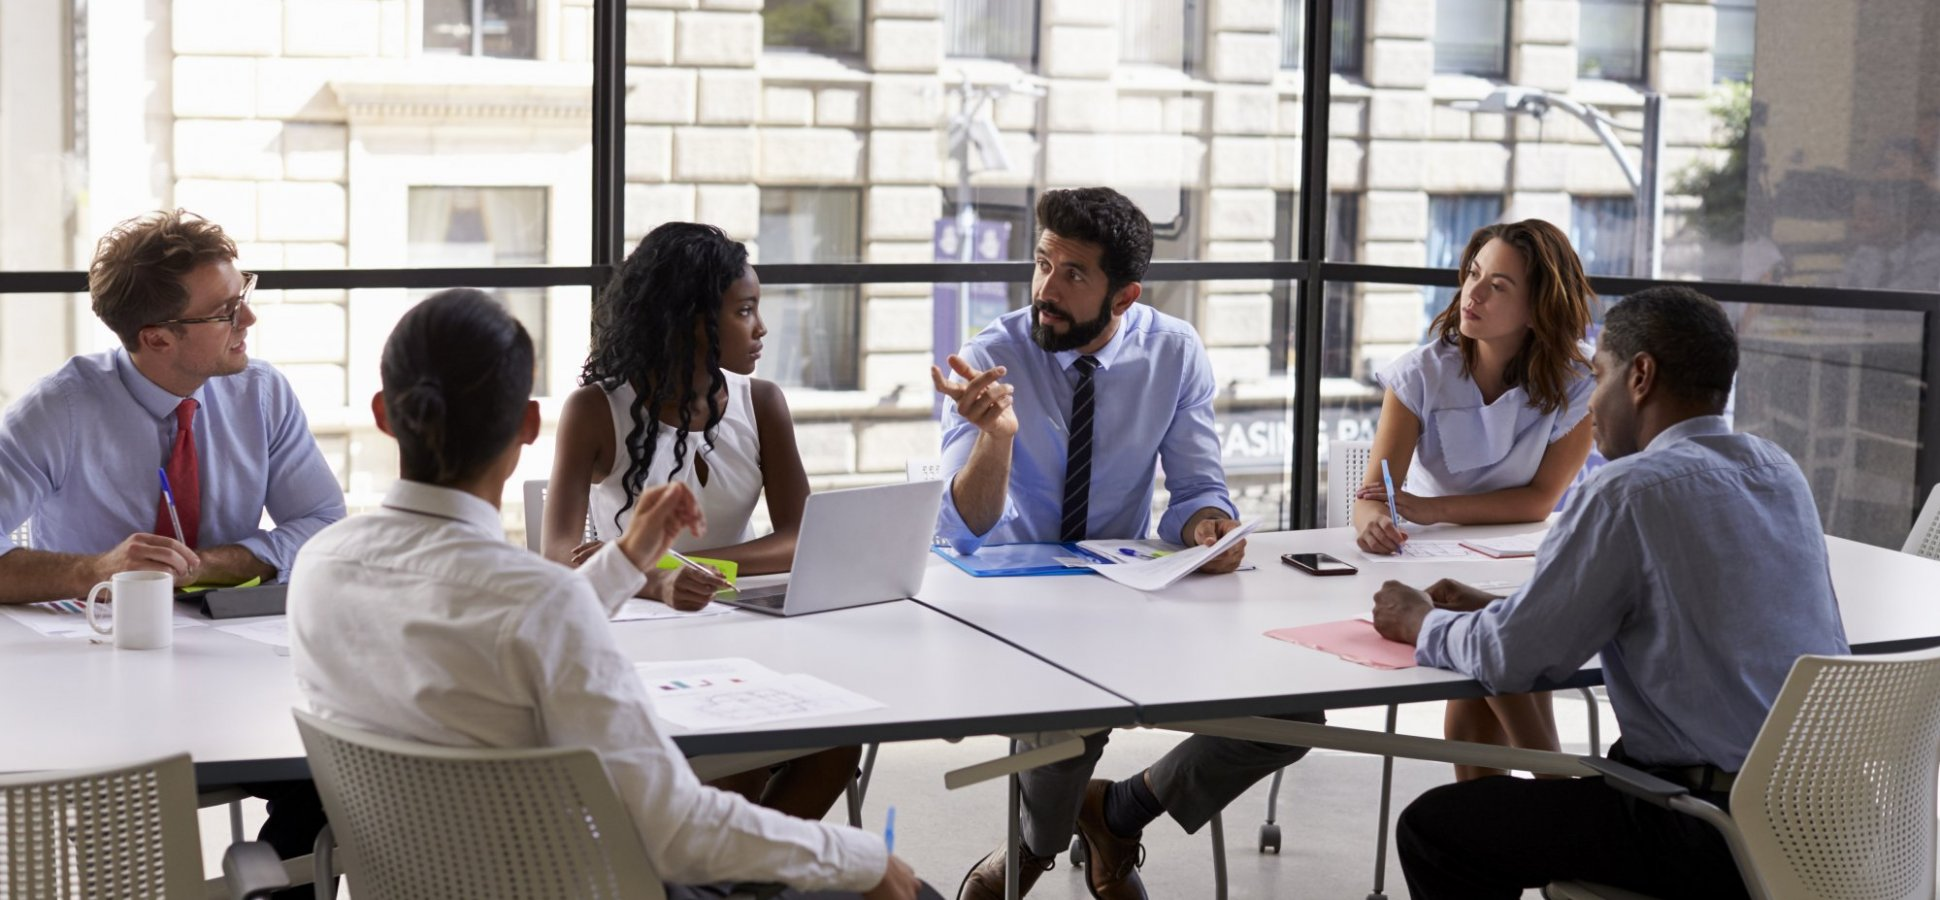 3 Common Habits of Entrepreneurs That Can Undermine Their Authority